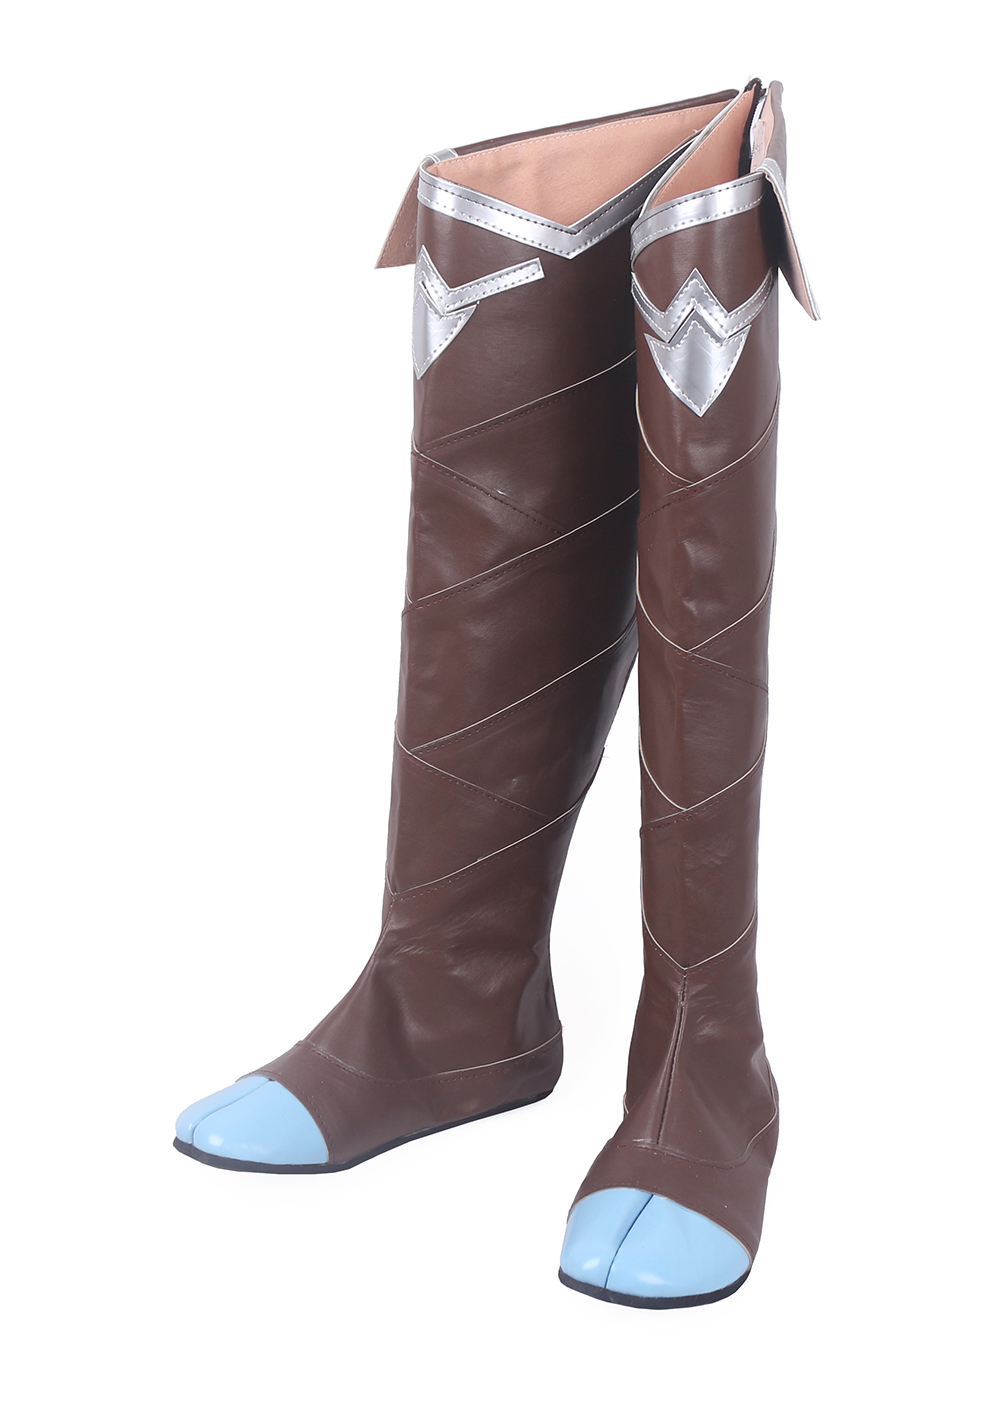 LOL Xayah The Rebel Cosplay Long Boots Shoes (4)